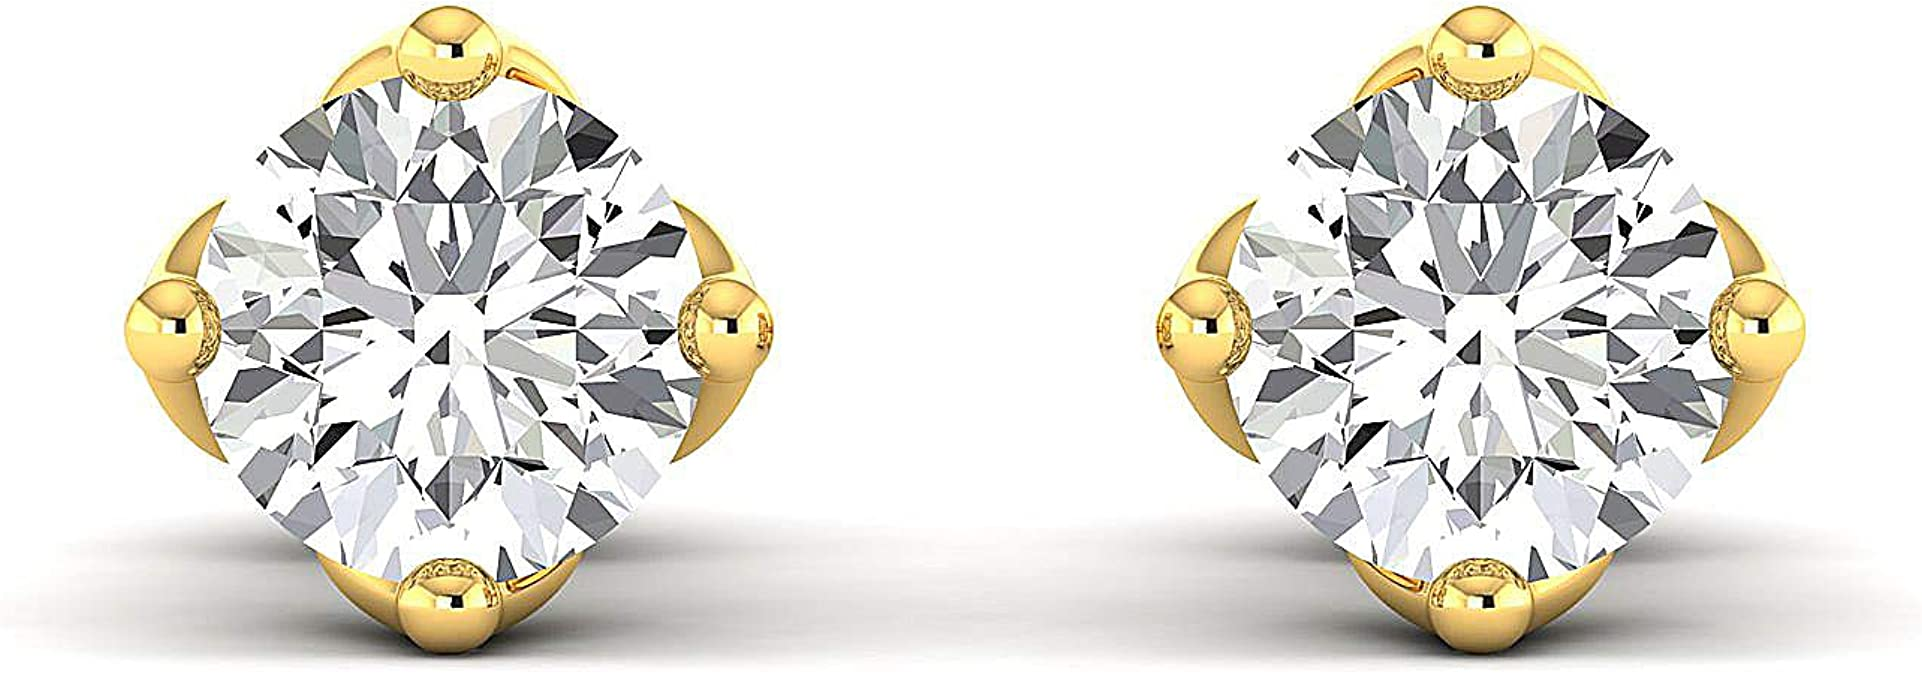 Stud Earrings for Women perfect Jewelry Gifts for Women Teen Girls Earring Studs 0.3 to 4 Carat Moissanite Stud Earrings Round Brilliant / Pure Gold // 925 Sterling Silver GH//VVS